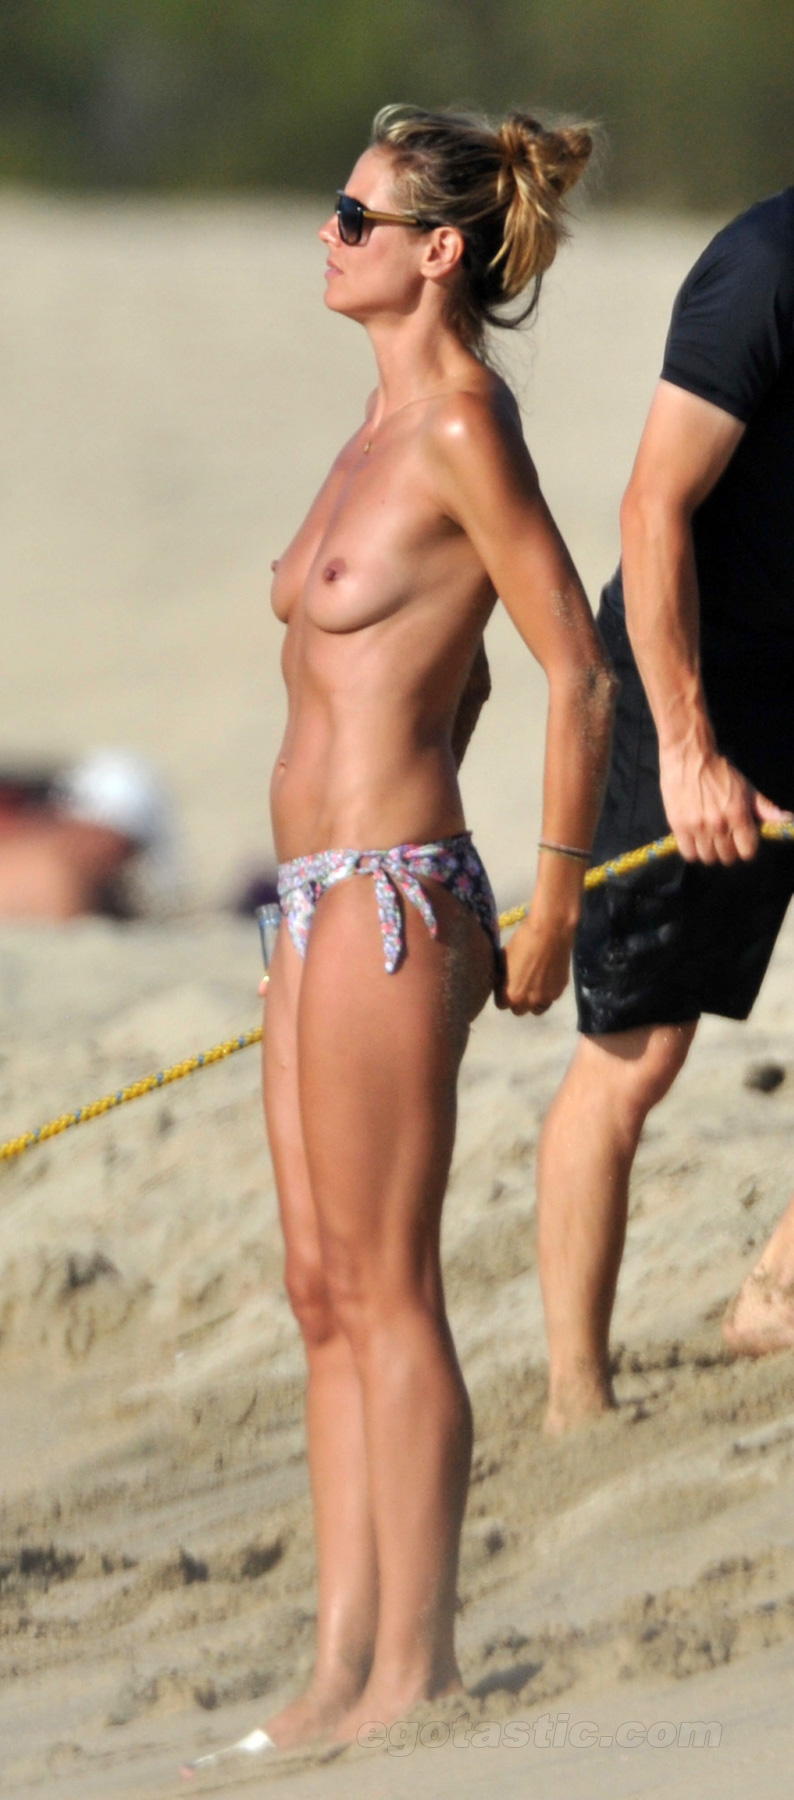 heidi-klum-topless-beach-france-08